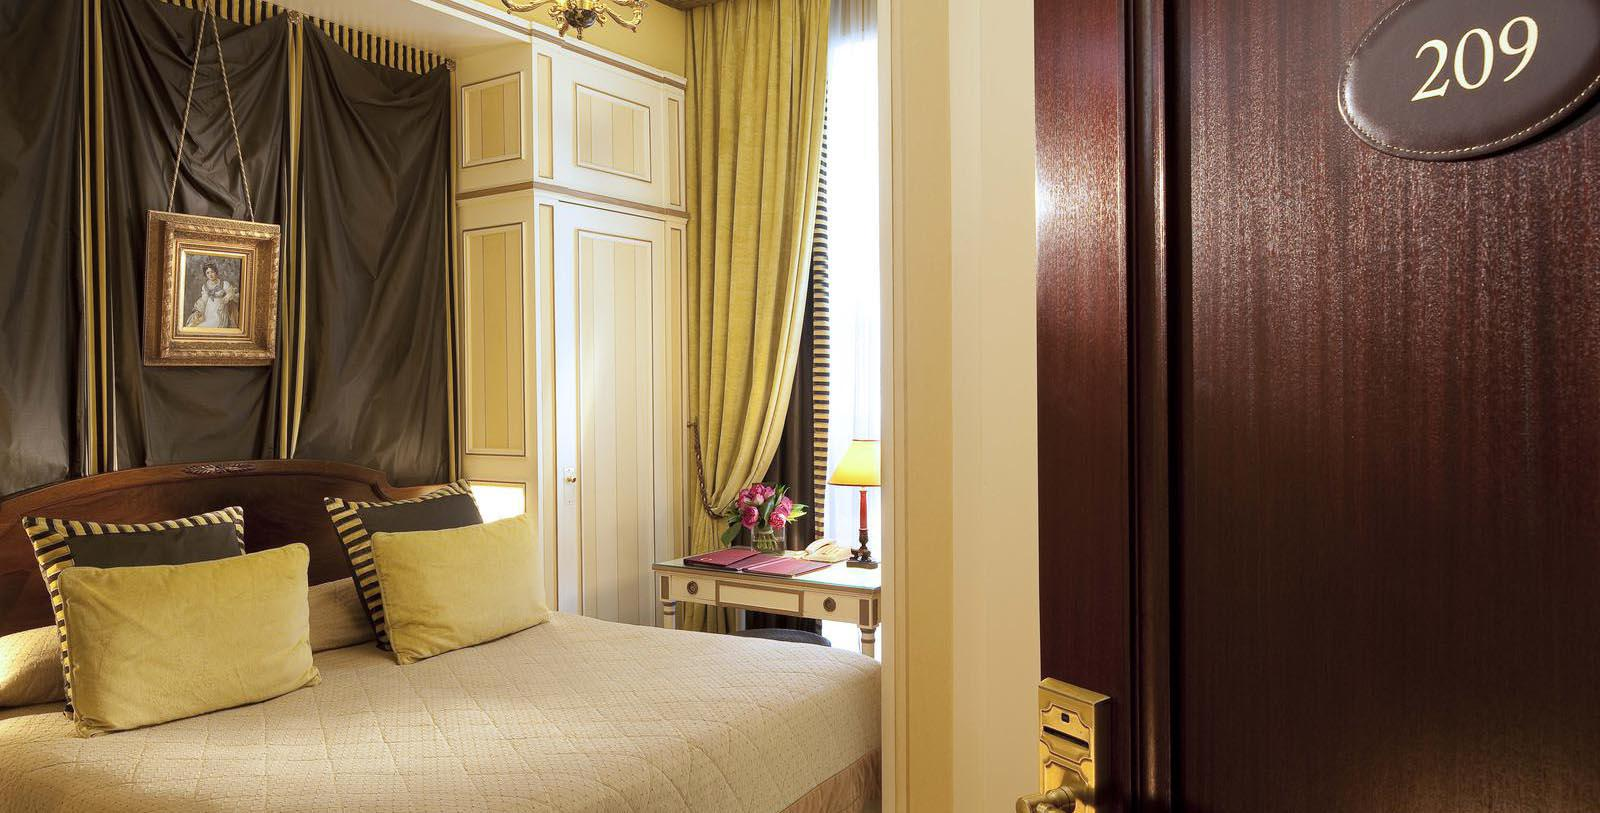 Image of Guestroom Interior, Hotel Napoleon Paris, France, 1928, Member of Historic Hotels Worldwide, Discover